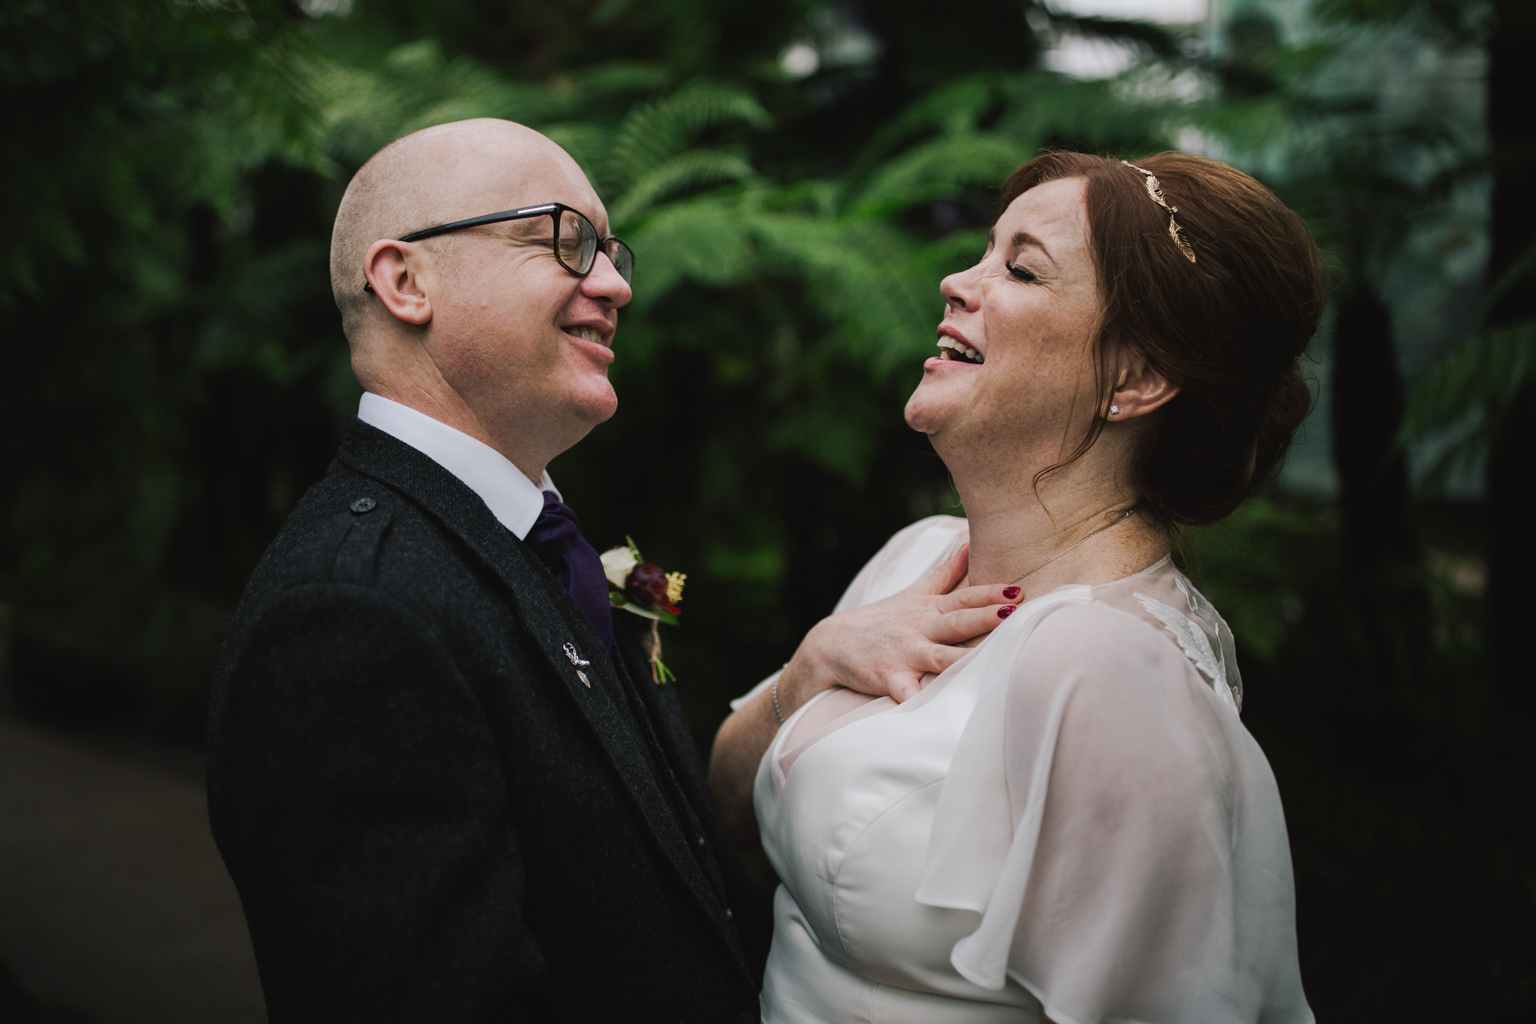 bride and groom laughing during their wedding at Glasgow Botanic Gardens by Lisa Jane Photography